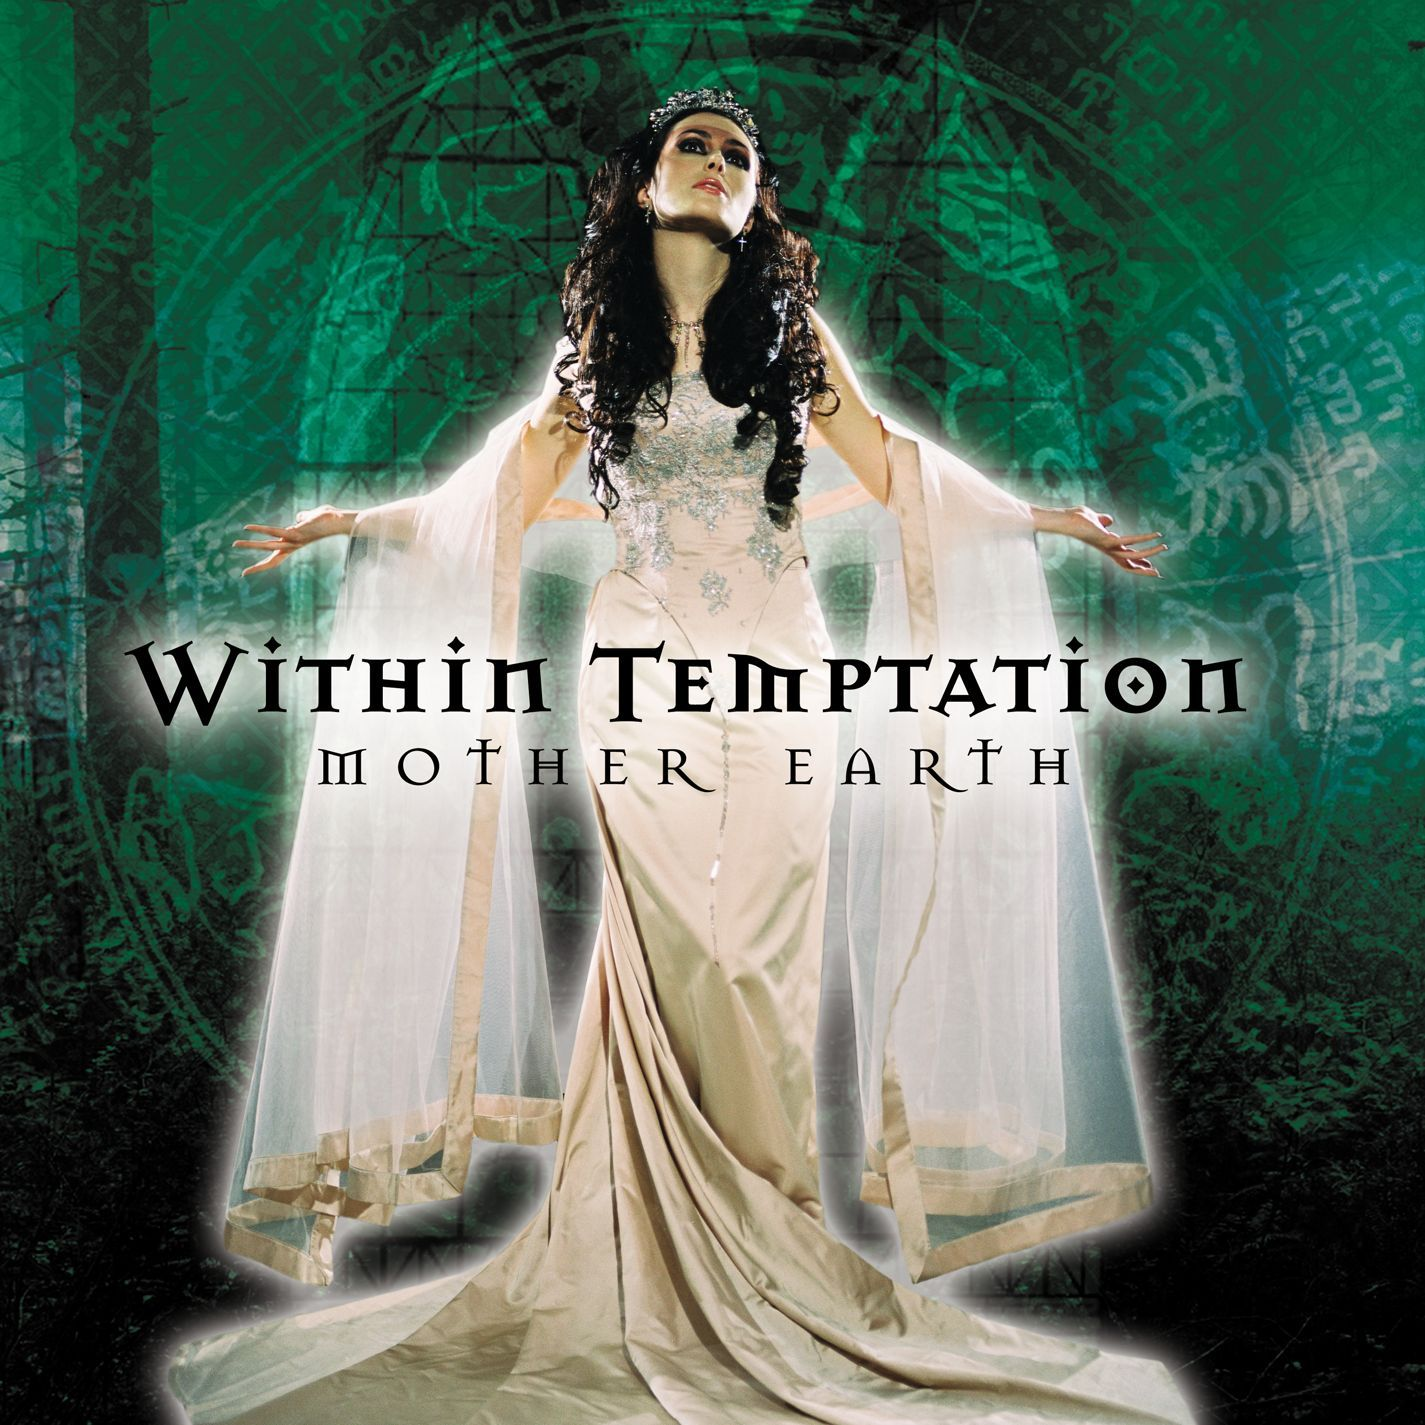 within temptation mother earth 2000 2004 withintemptation gothicmetal gothic bands i. Black Bedroom Furniture Sets. Home Design Ideas